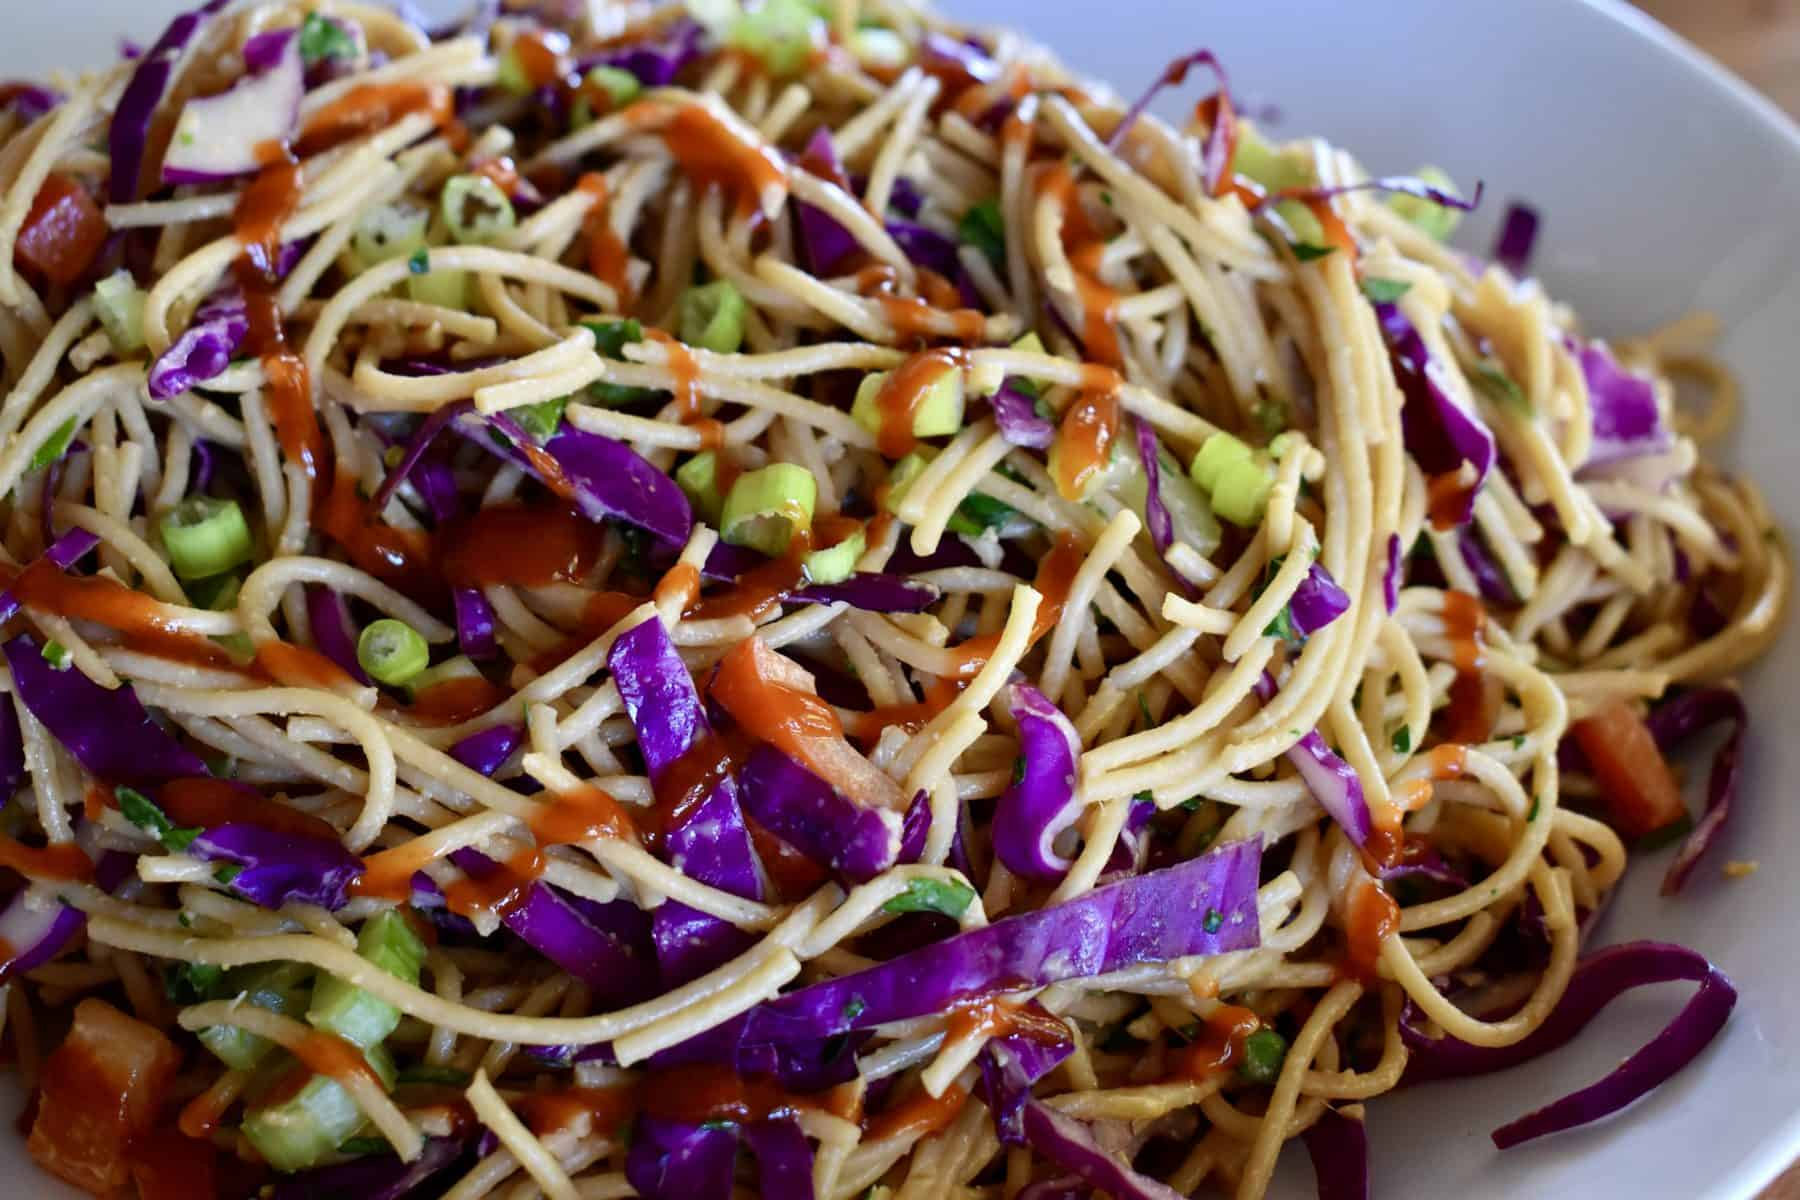 Cold Asian Noodle Salad in a white bowl.